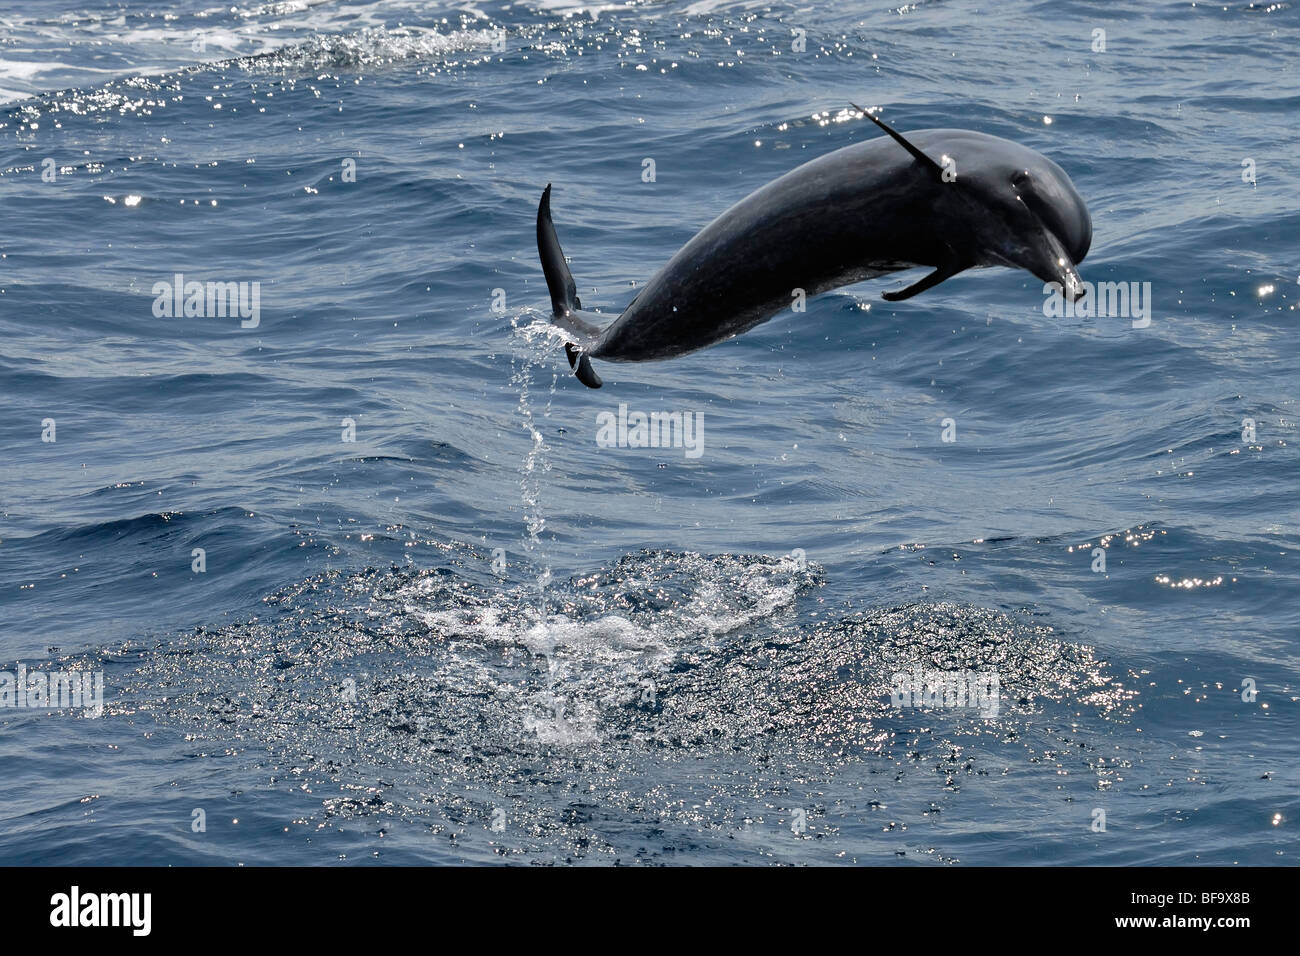 Pantropical Spotted Dolphin, Stenella attenuata, breaching clear of the water, Maldives, Indian Ocean. - Stock Image